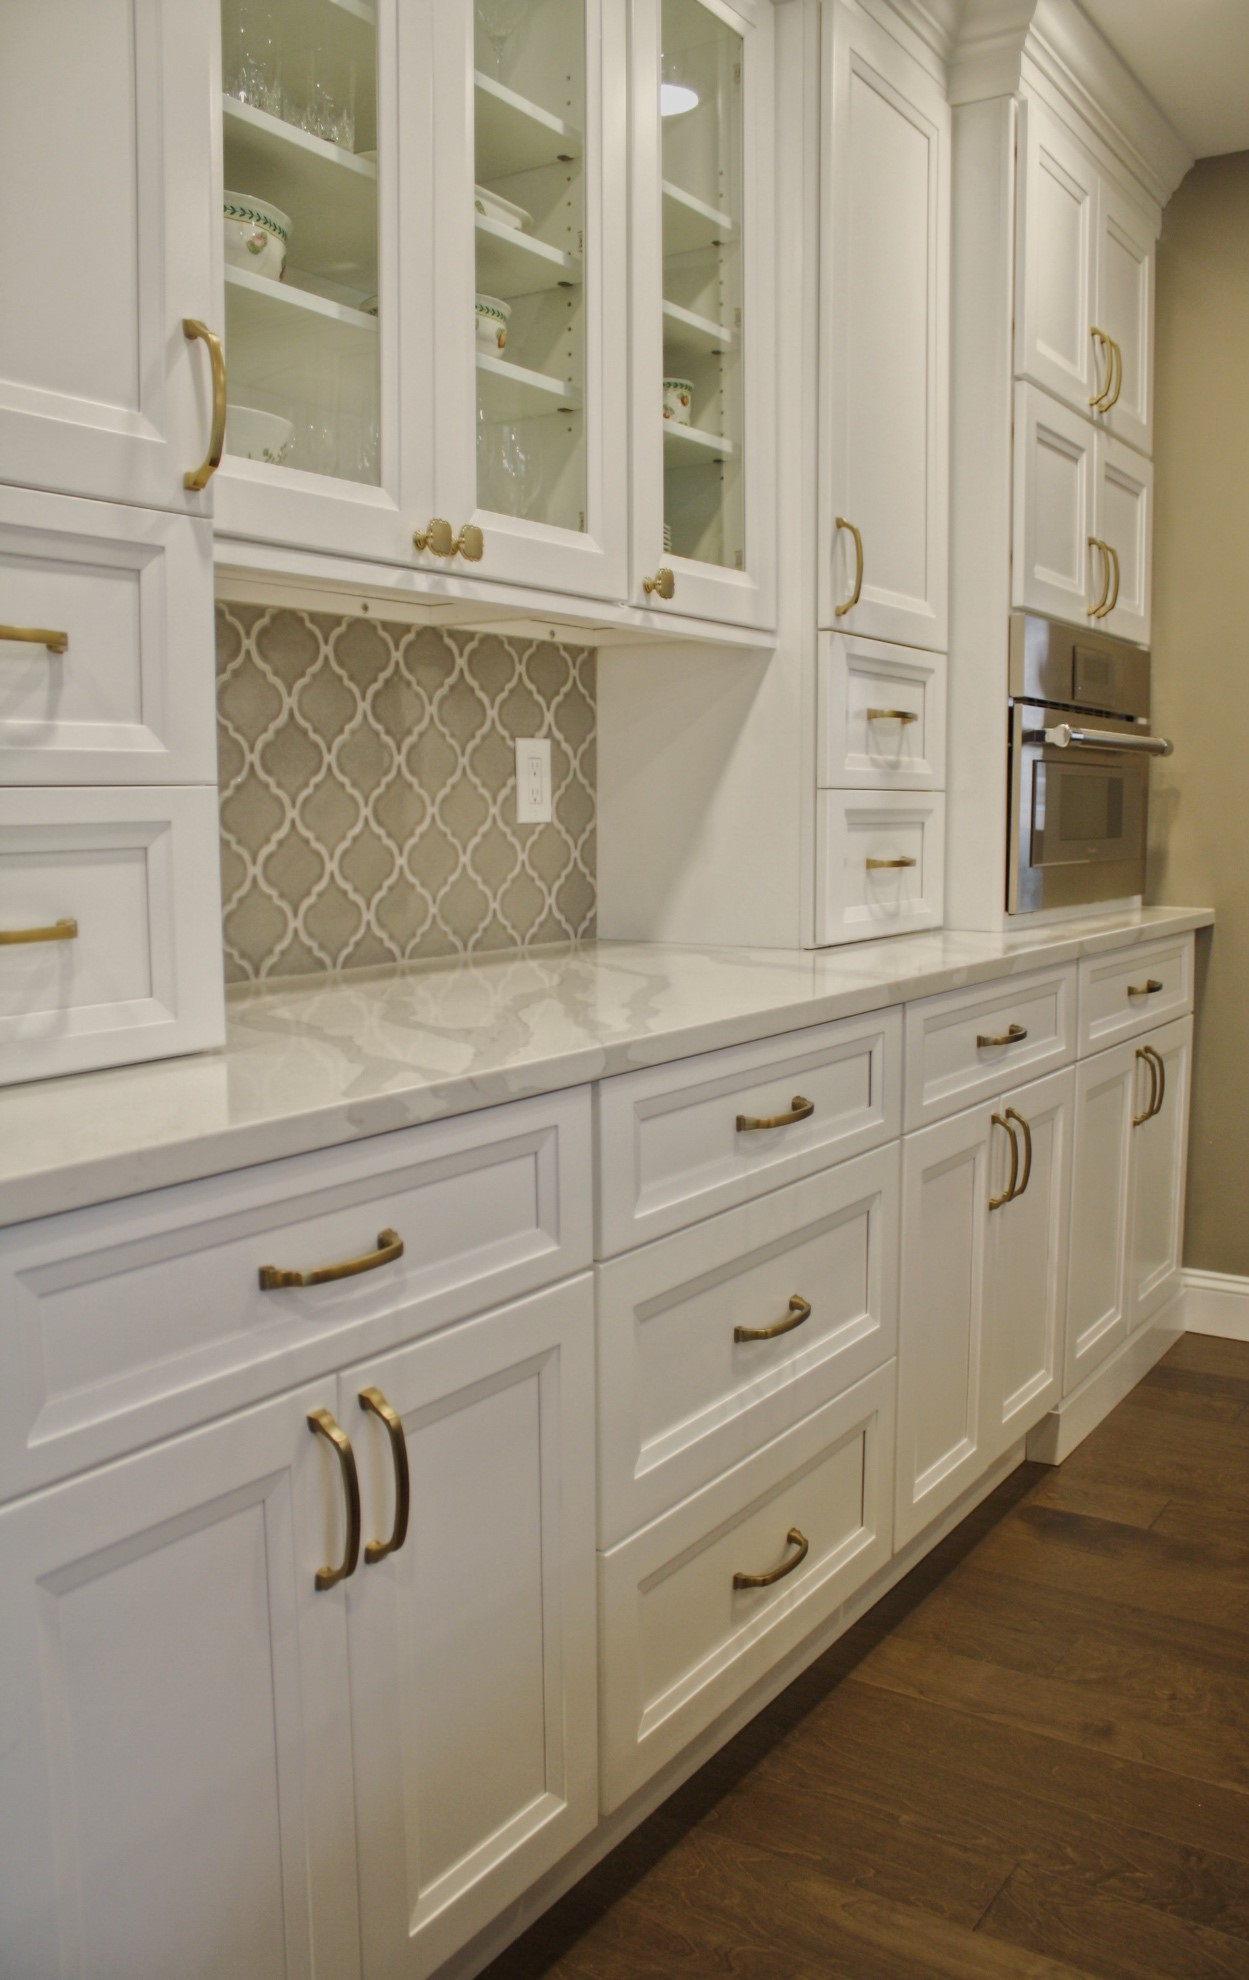 New Kitchen Cabinets in White